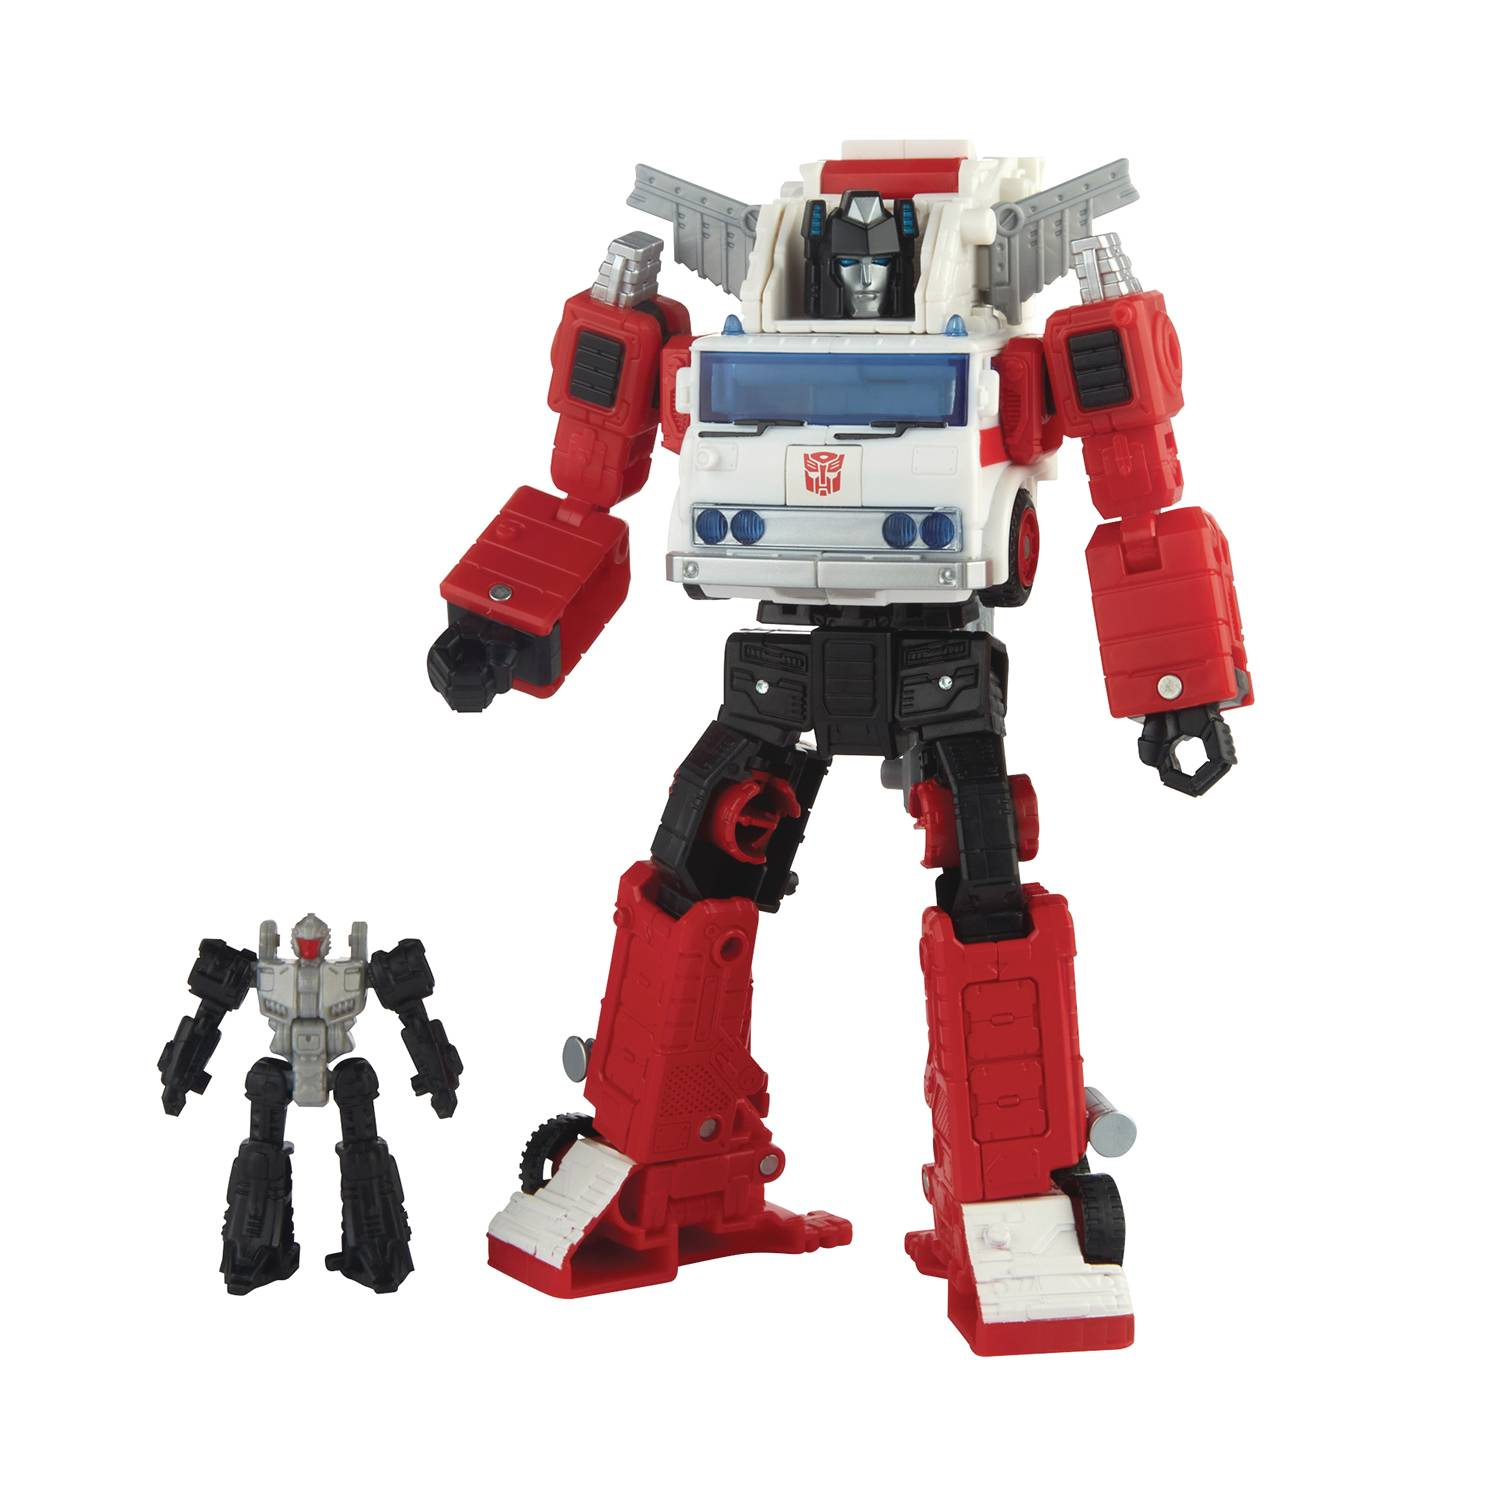 Transformers Generations Selects - Voyager Artfire Action Figure